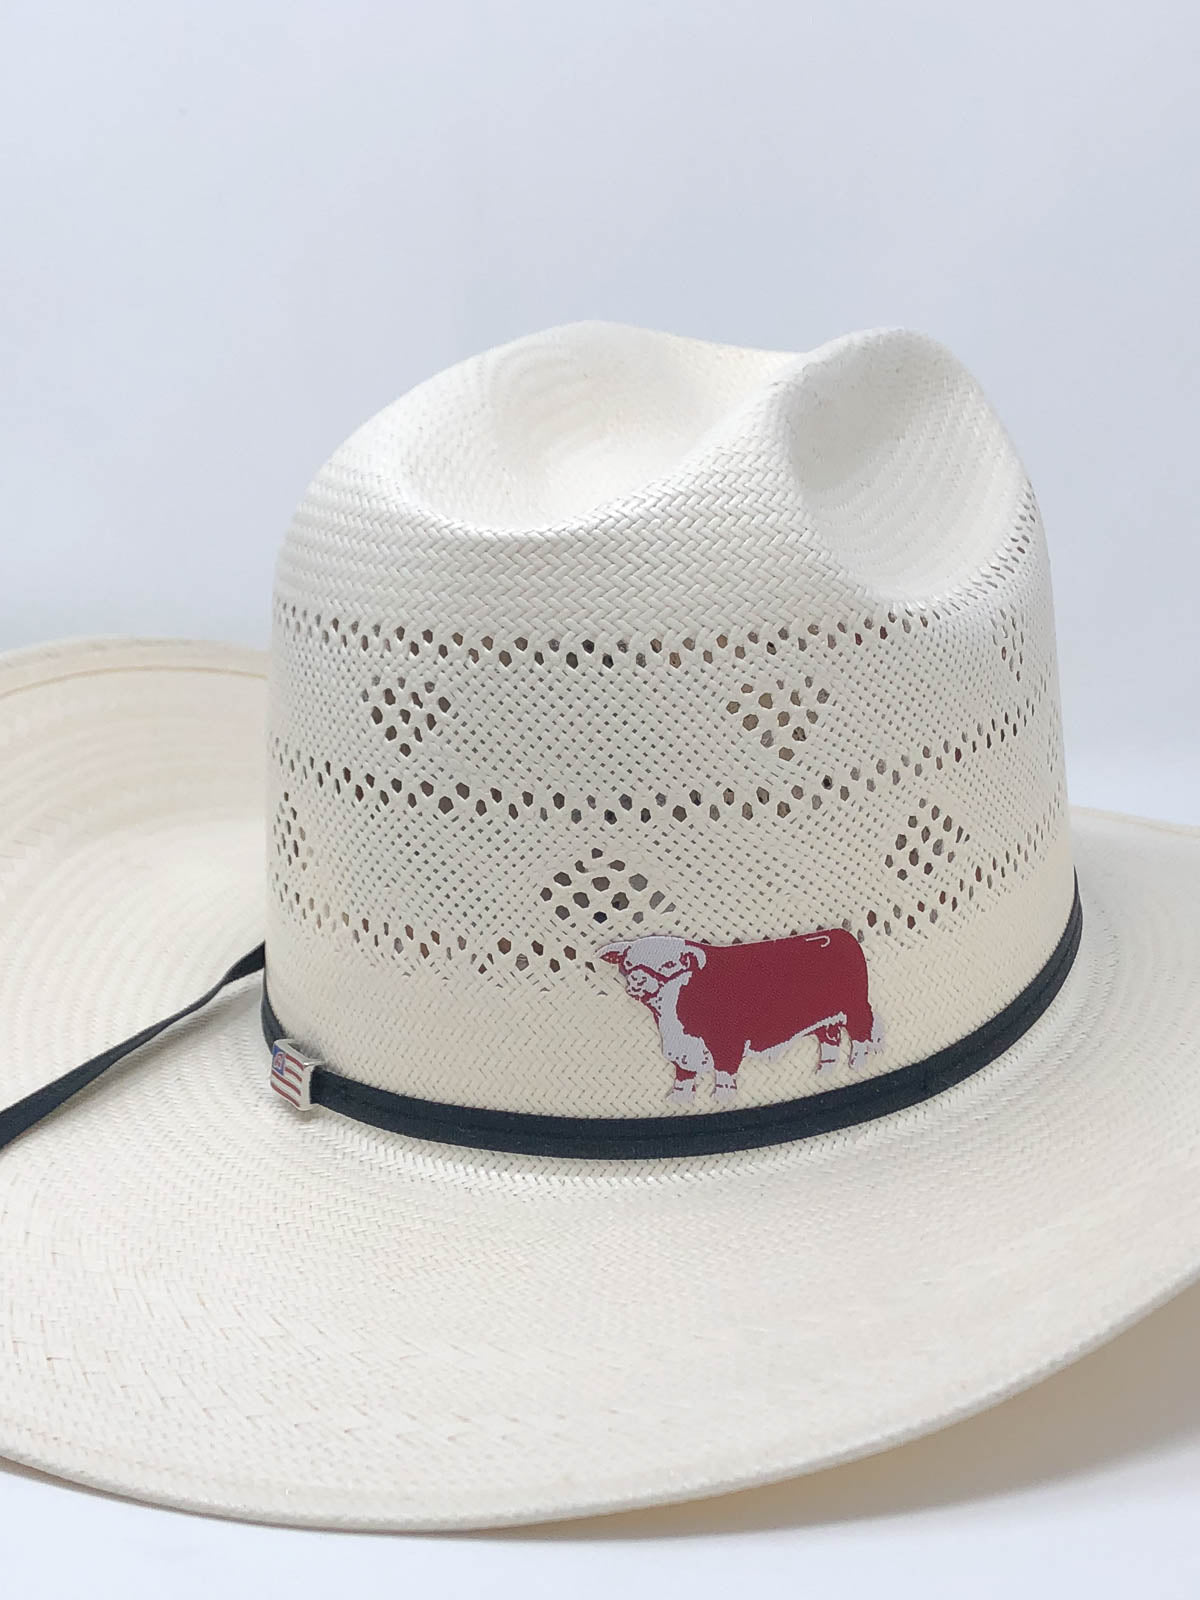 Lazy J Ranch Wear Hereford Straw/Felt Hat Patch Sticker